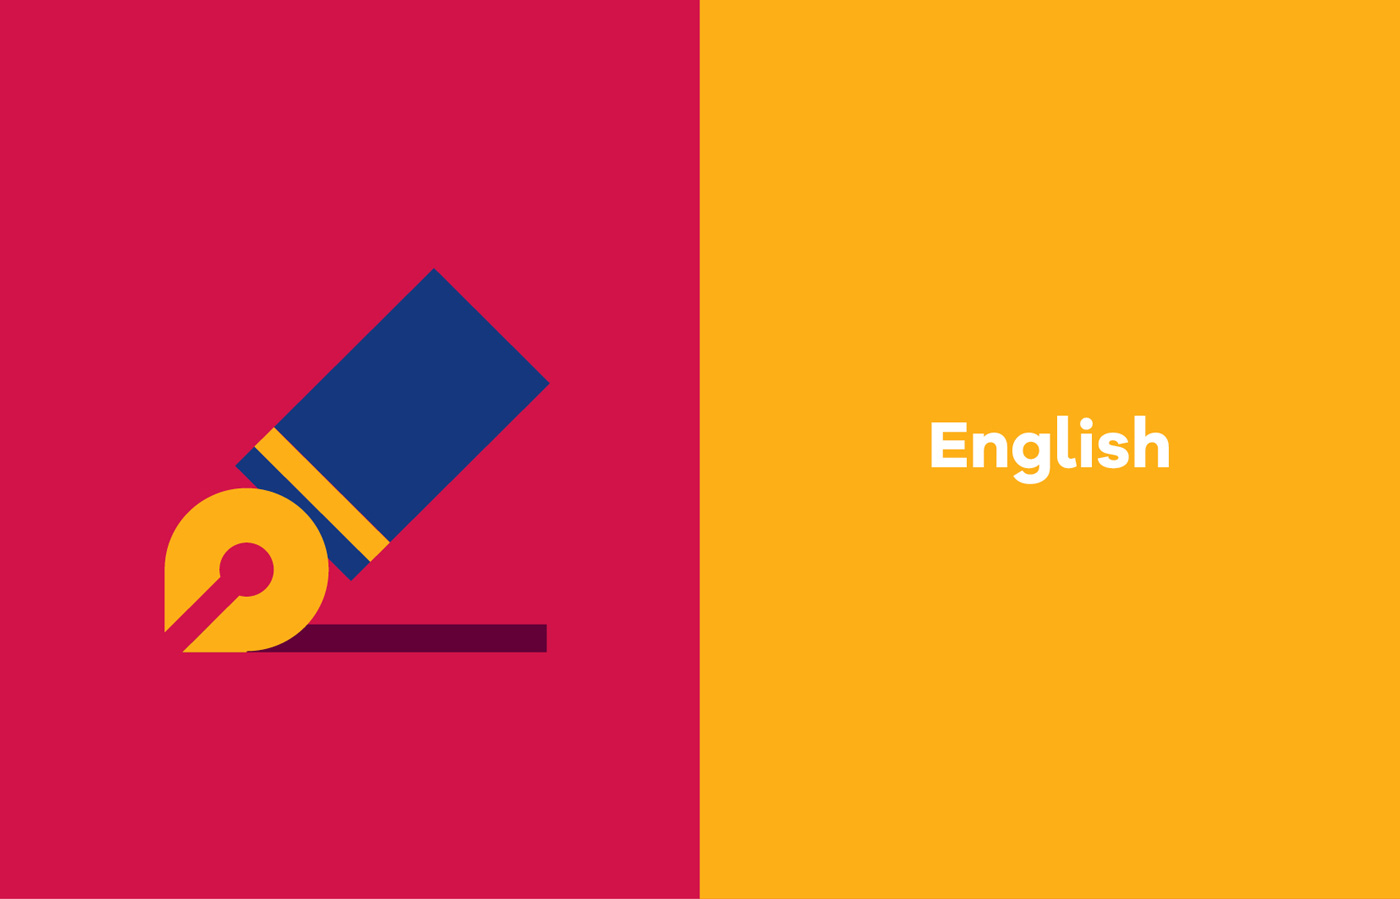 UL Bachelor of Arts campaign graphic design iconography for English